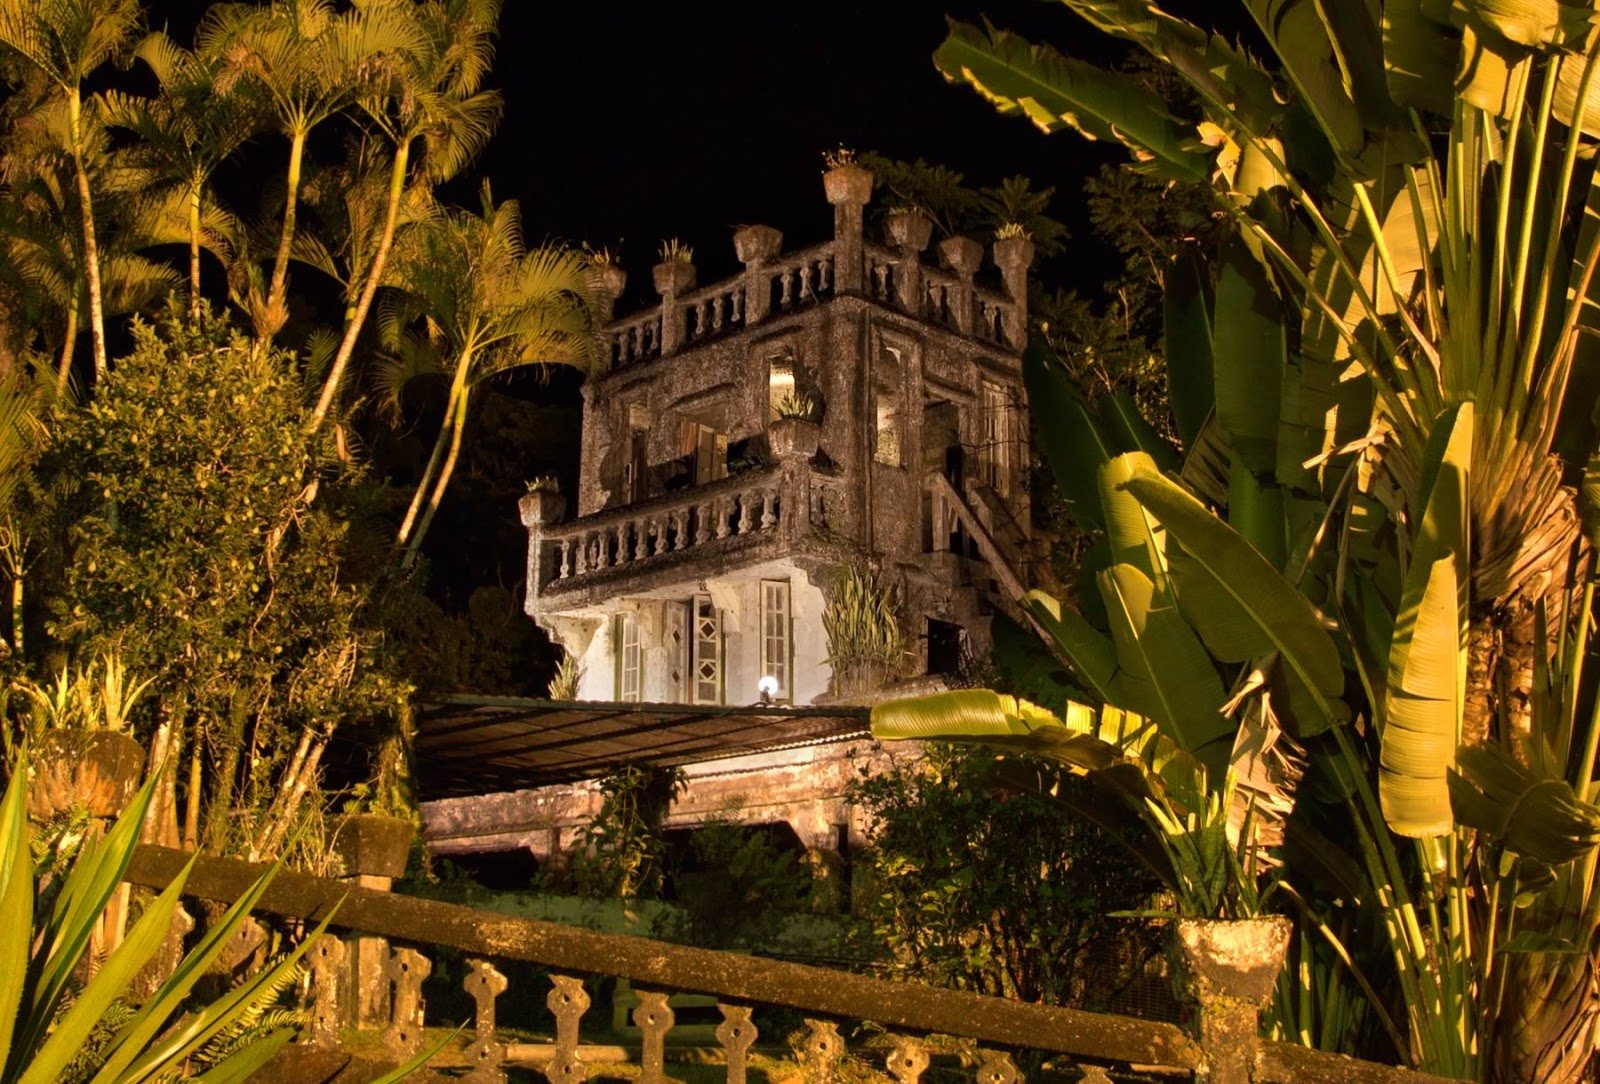 paronalla-top-castle-at-night